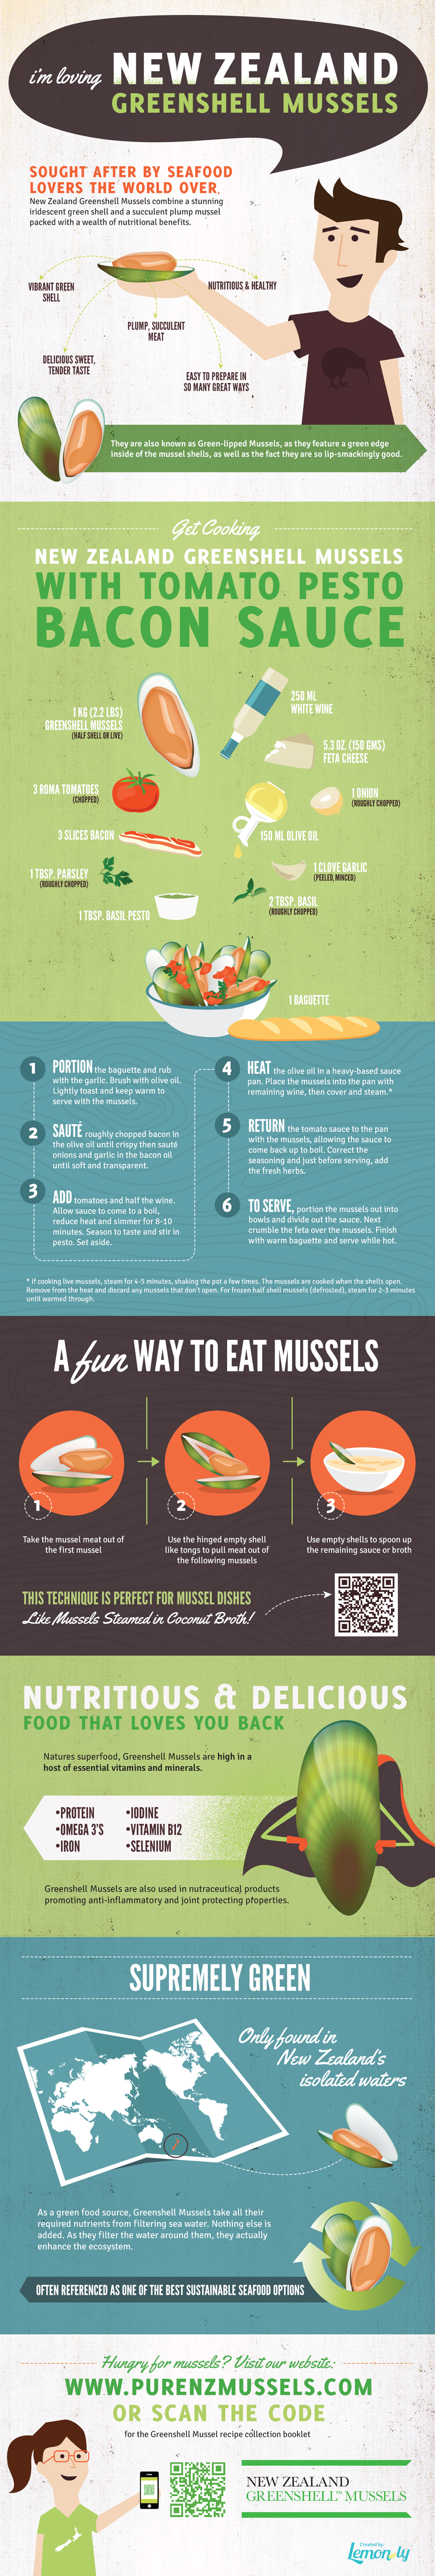 New Zealand Greenshell Mussels | Best Food Infographics